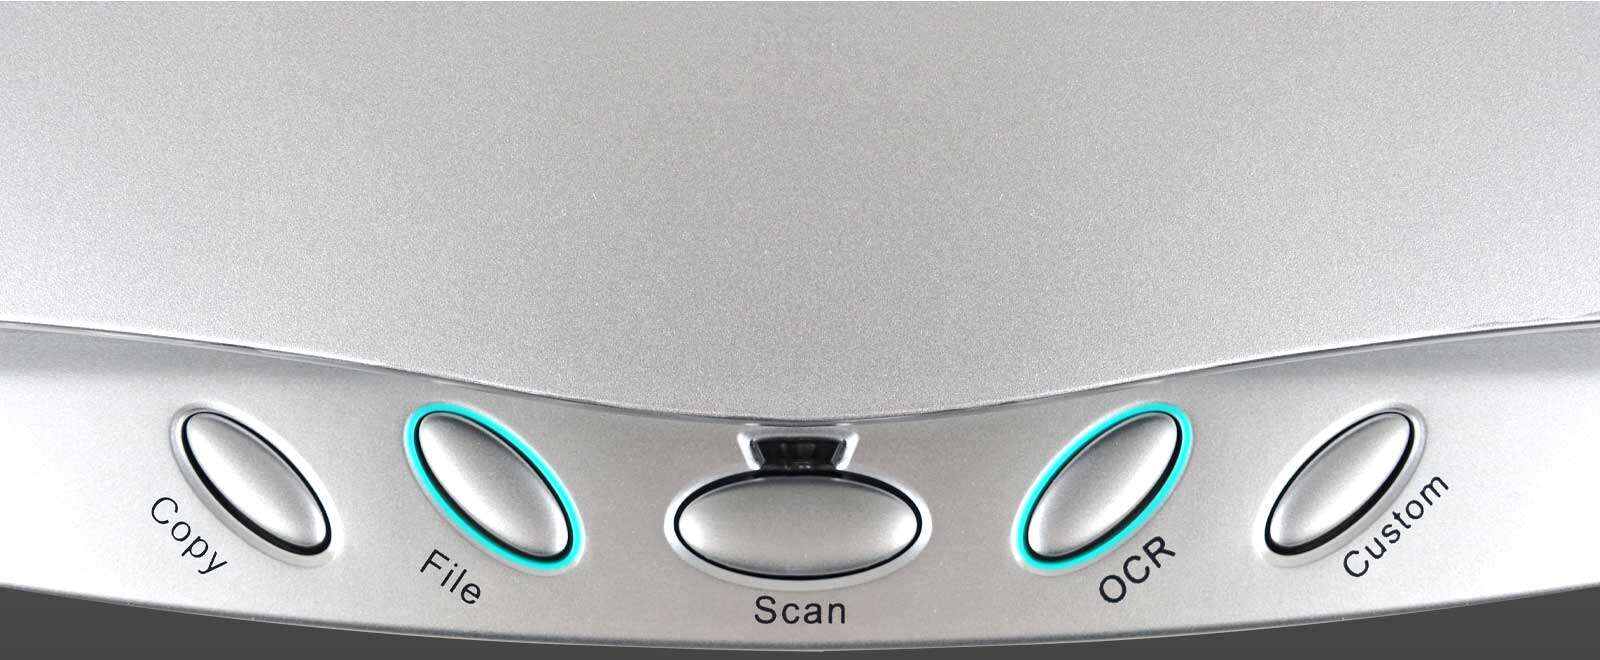 The OpticSlim 550 Plus has five one-touch scan buttons to simplify the whole scanning process and automate the most used functions.